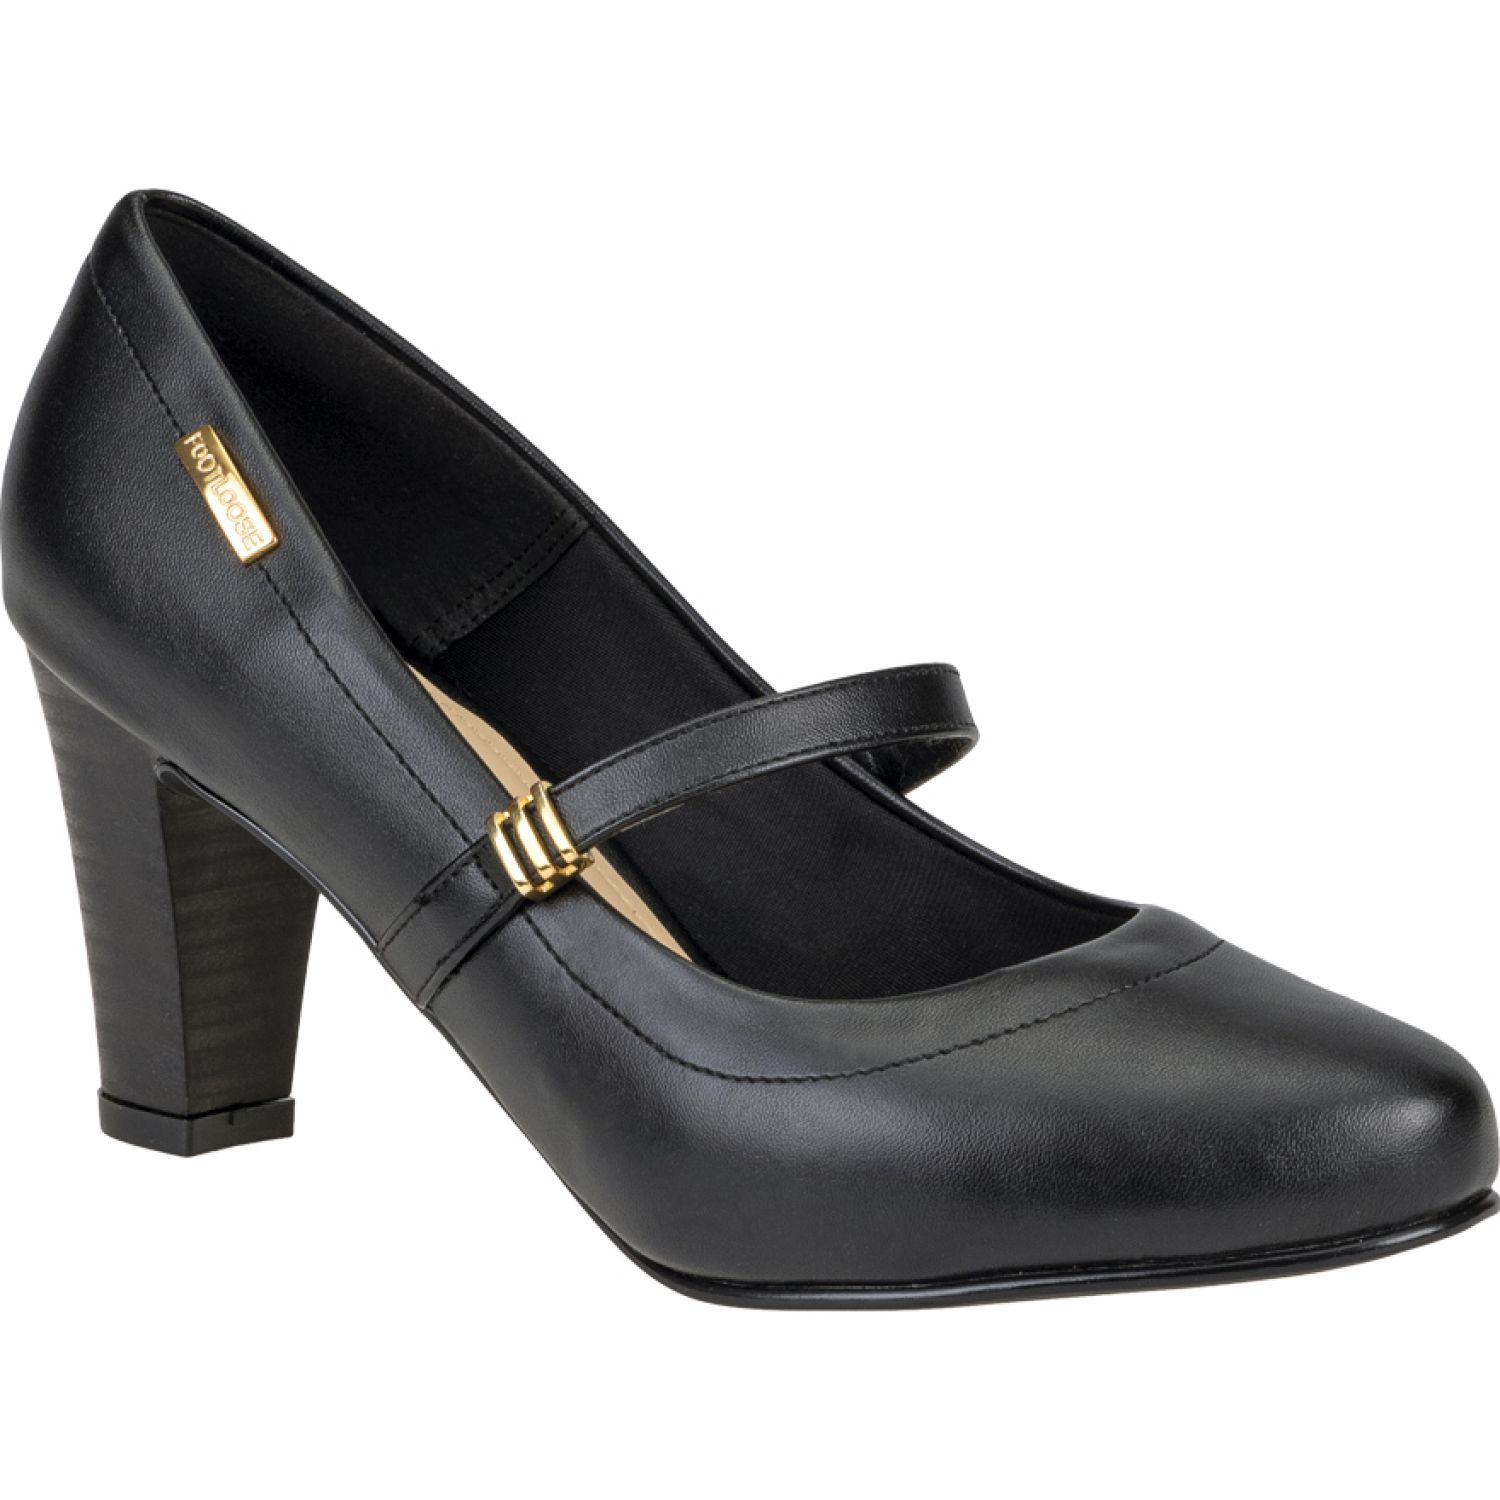 FOOTLOOSE Fs-03i20 NEGRO Estiletos y pumps